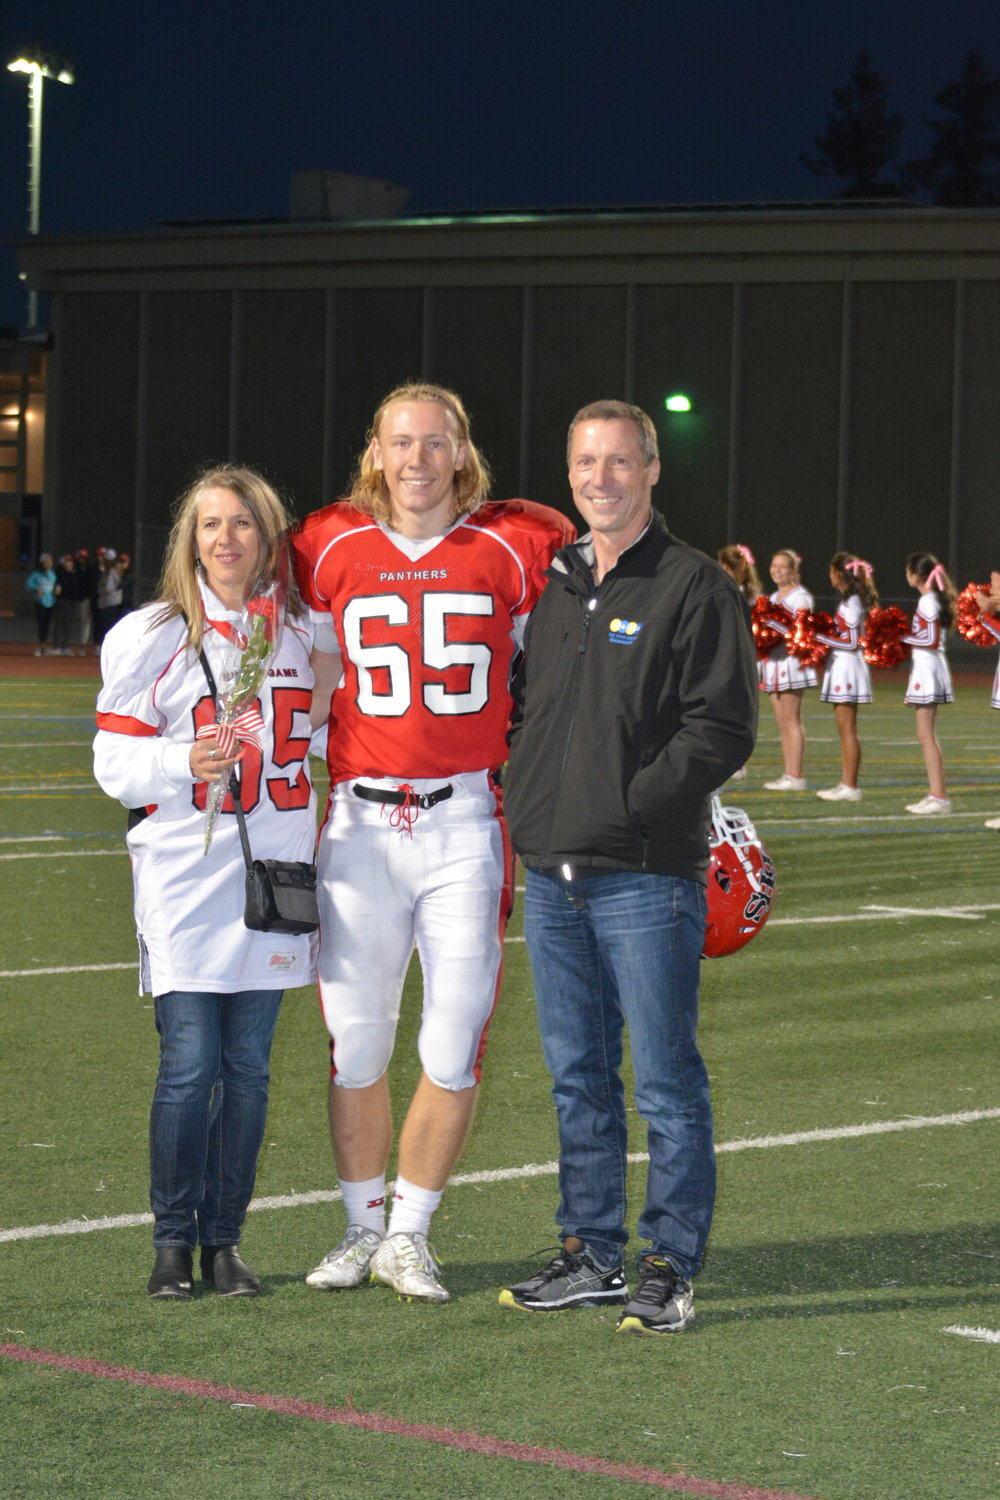 Lucas Flygare poses with his parents at the Senior Night game against Terra Nova High School.